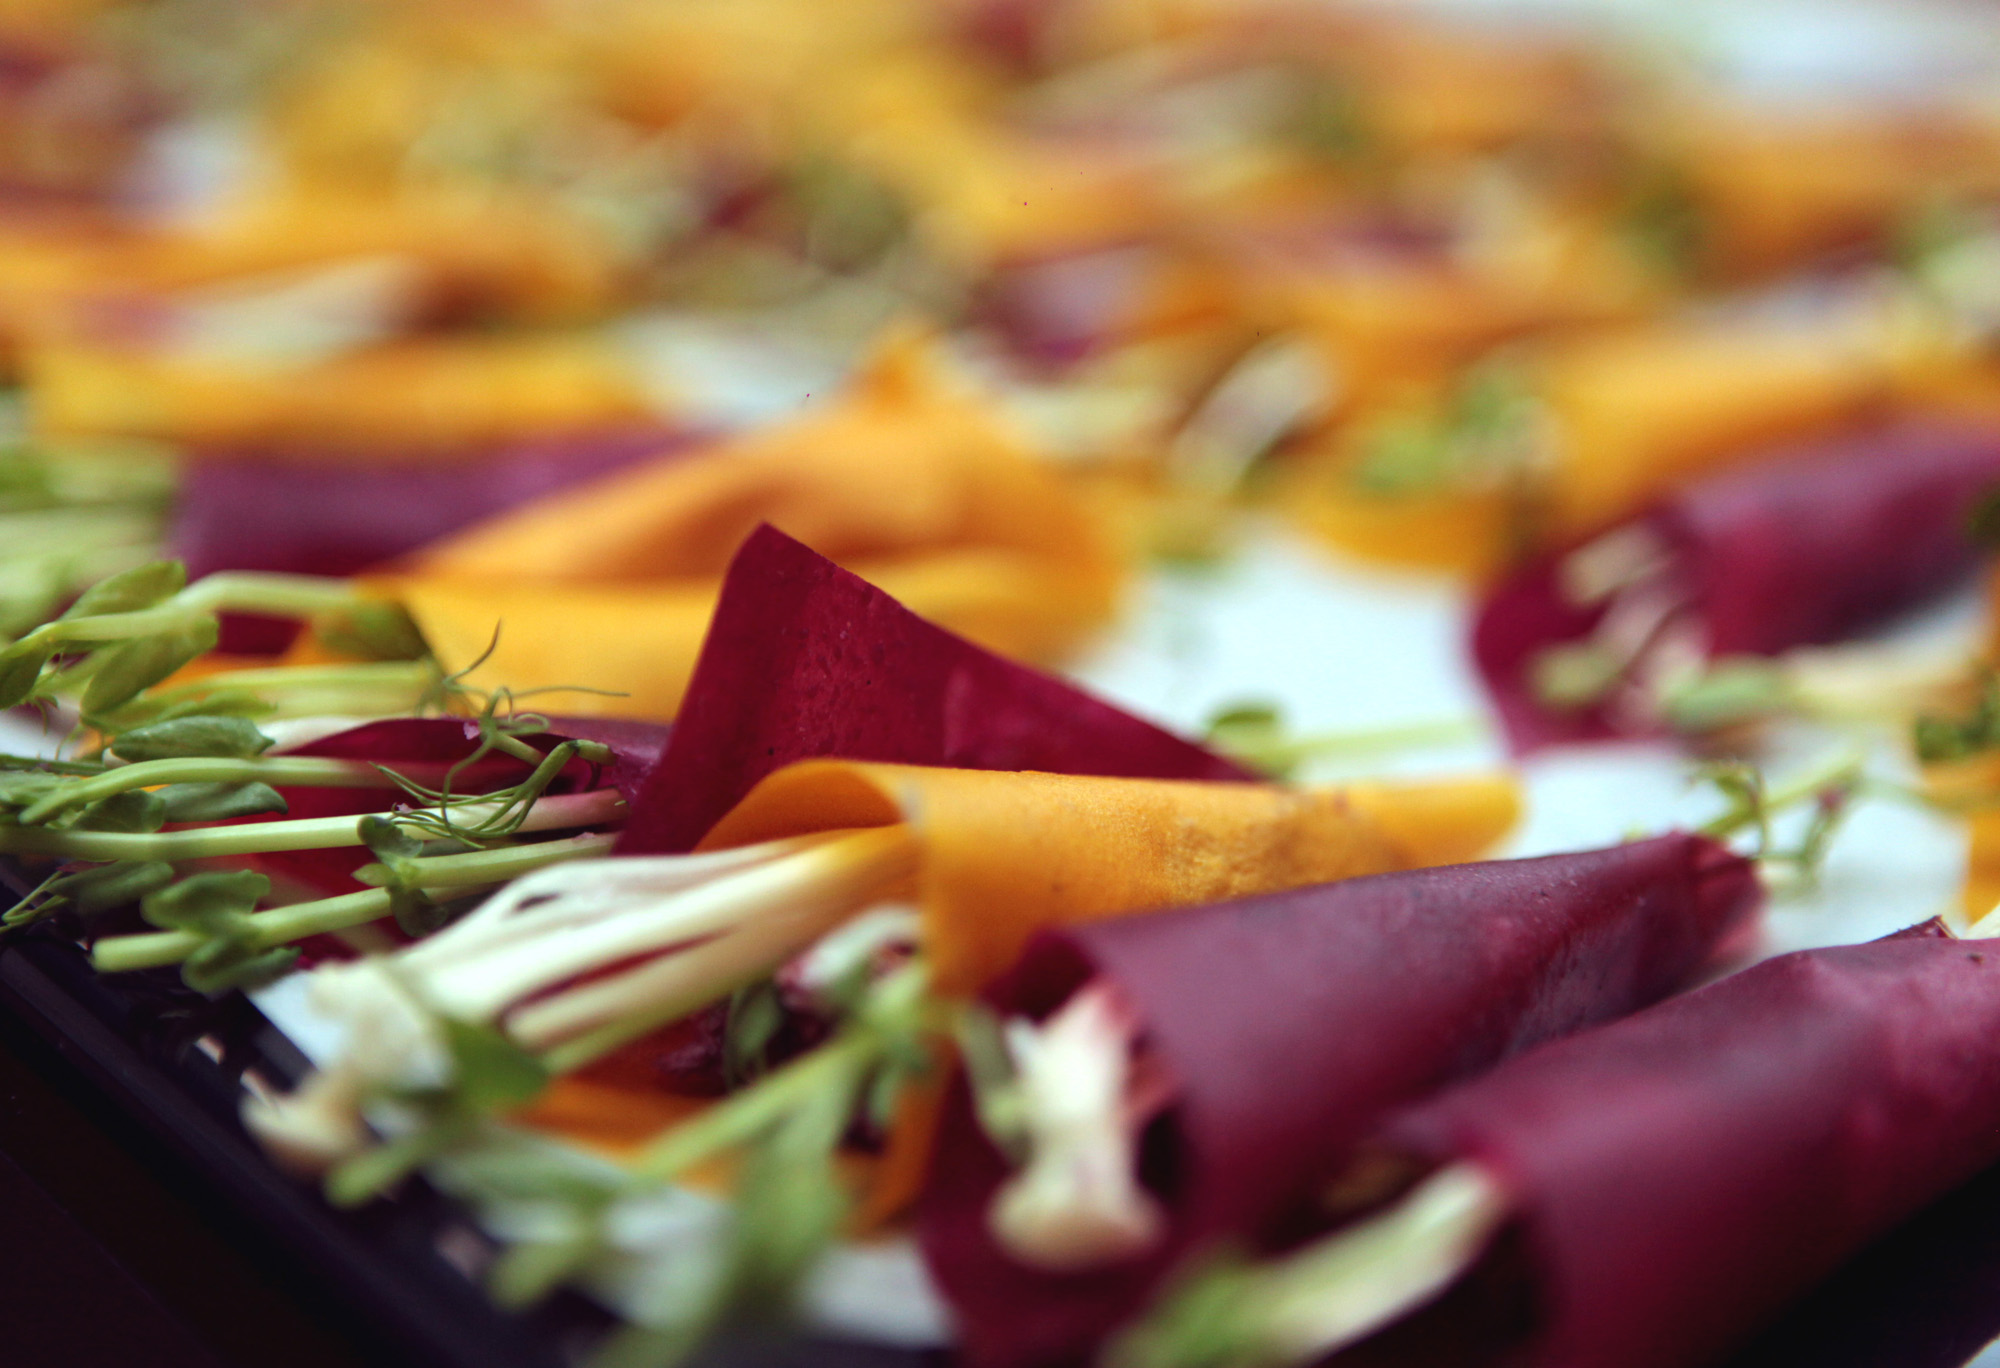 Beetroot & carrot wrappers made from young coconuts.  Photo: Des Moriarity